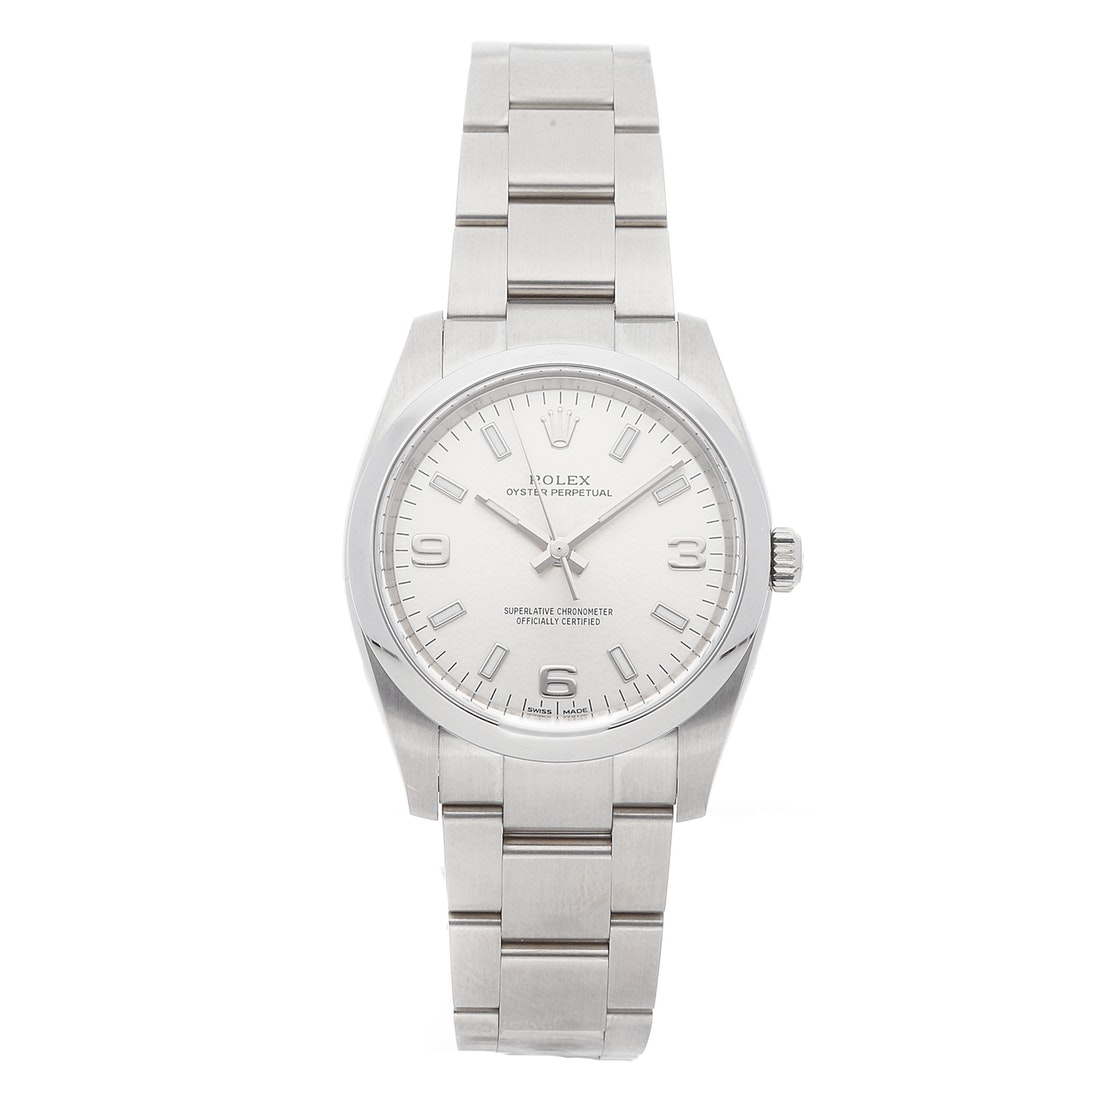 Rolex Oyster Perpetual 114200